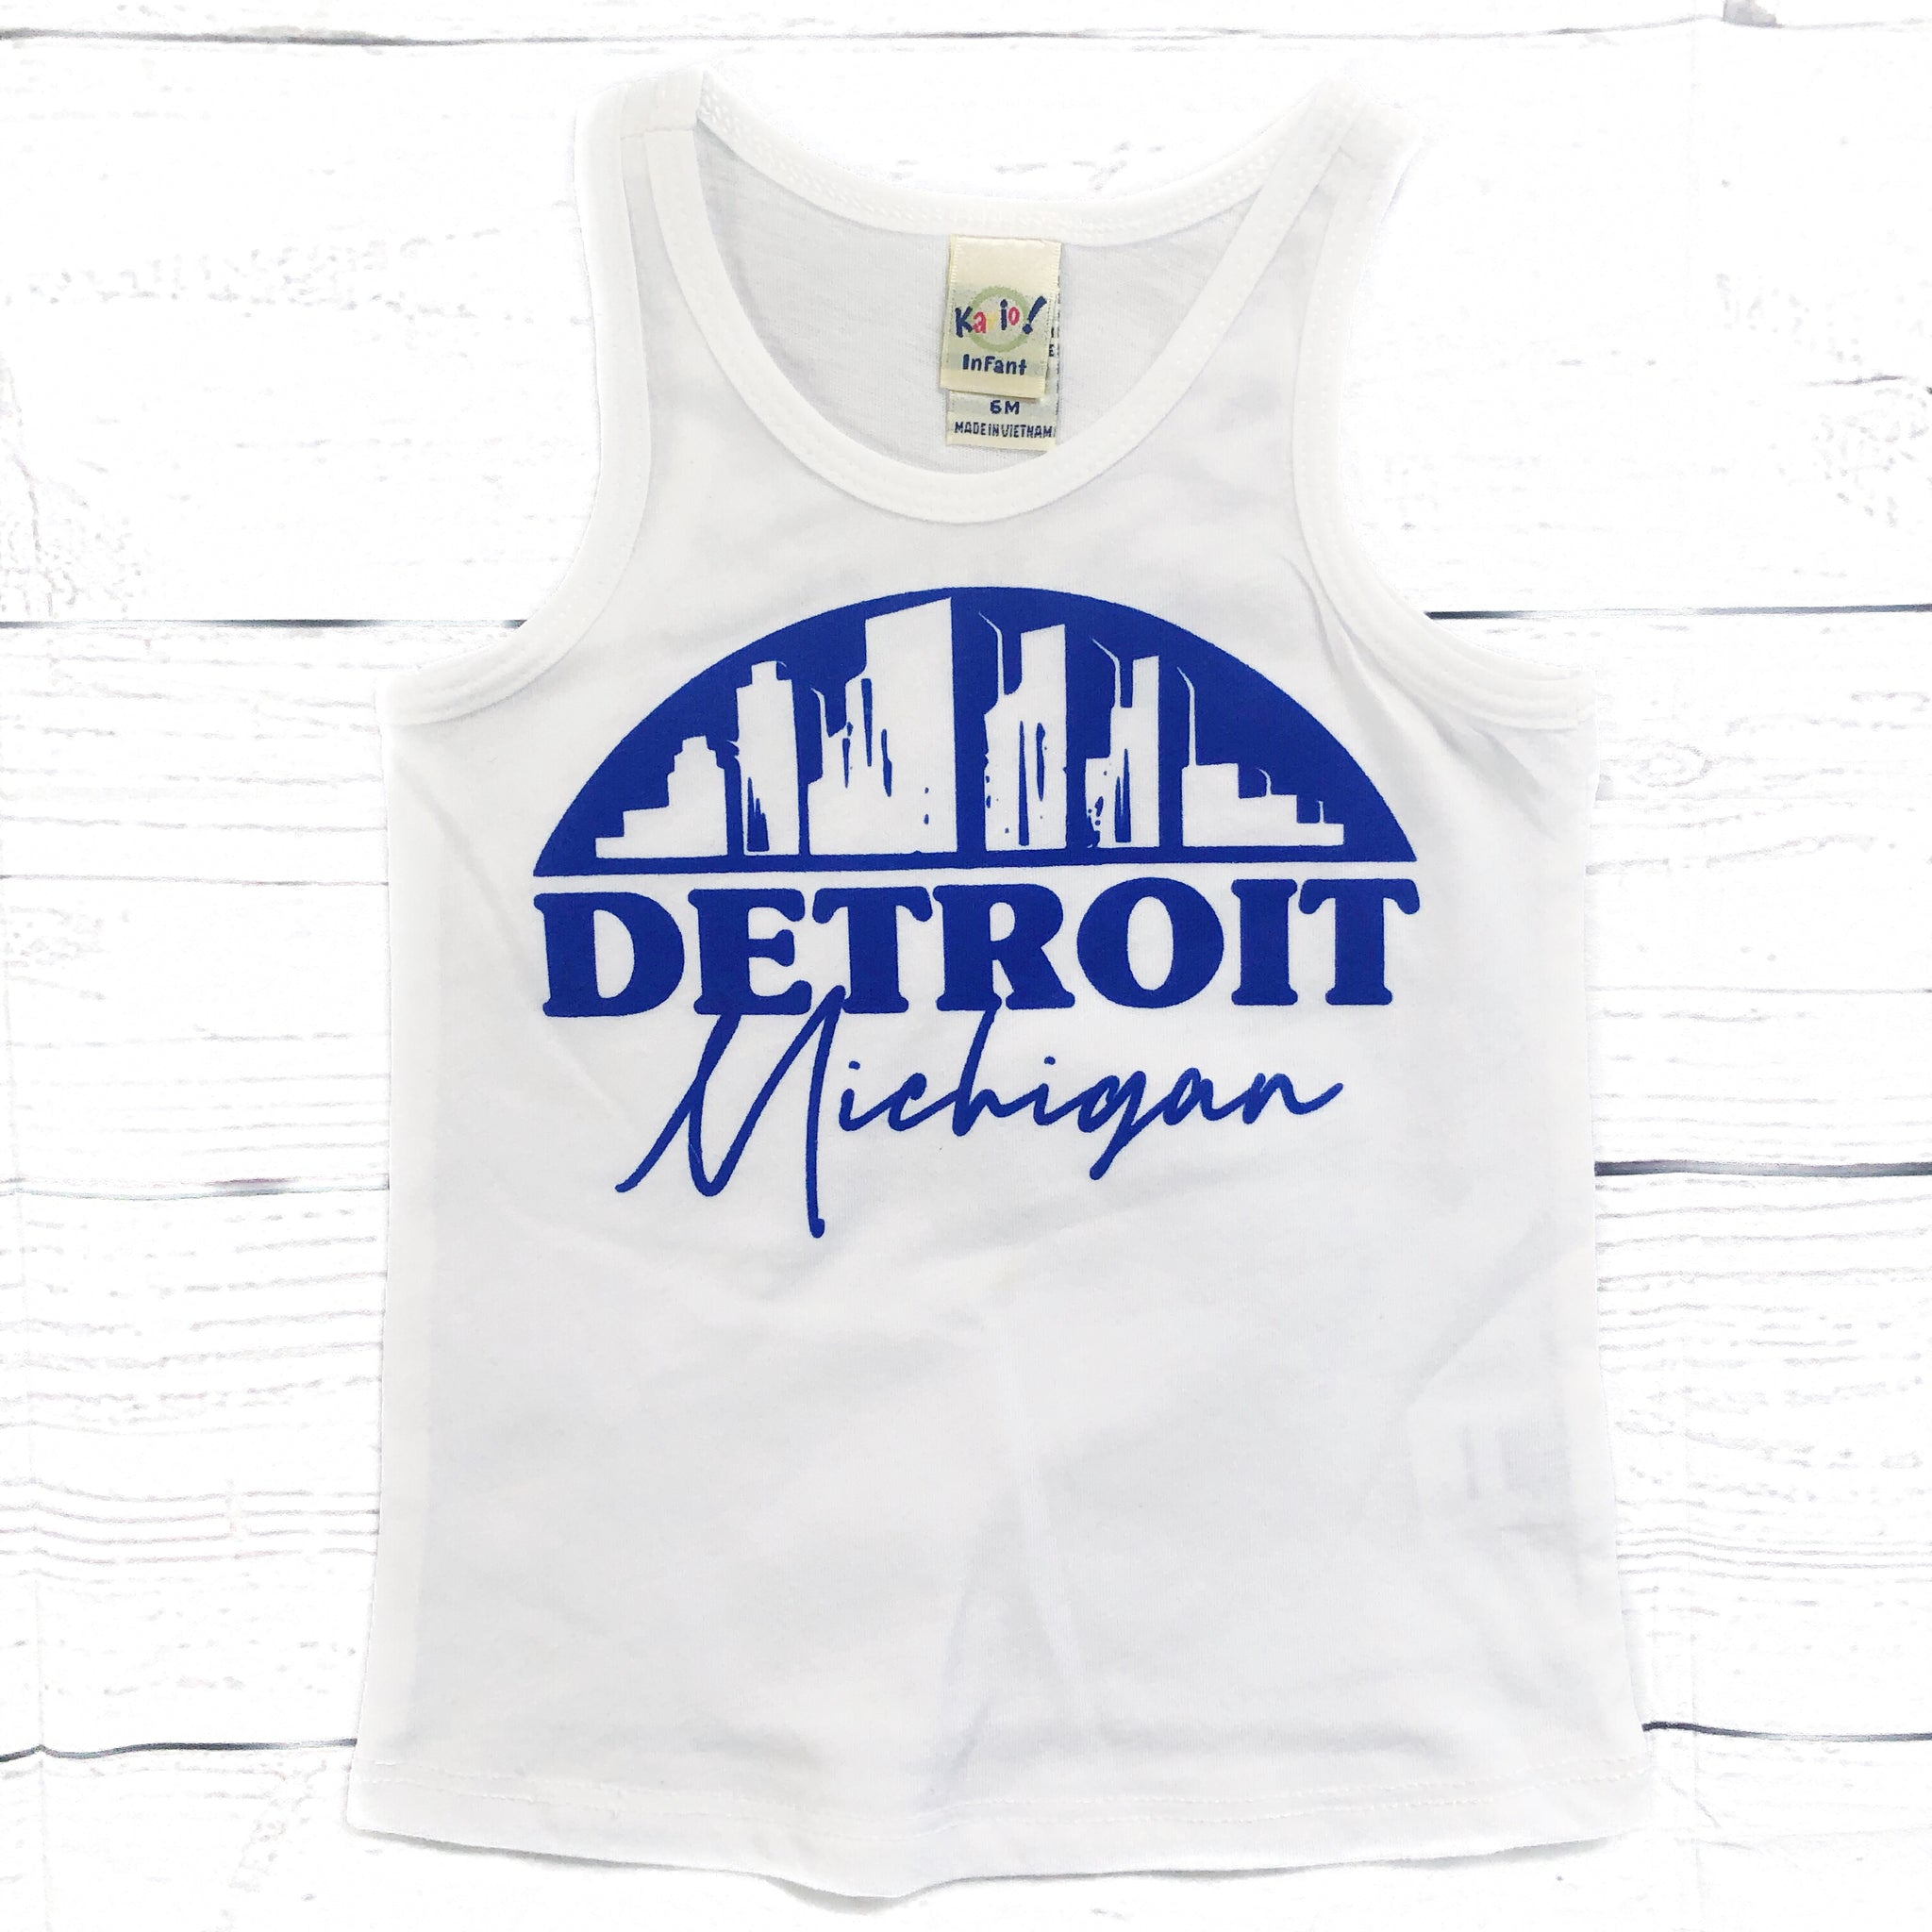 Detroit Skyline tank top